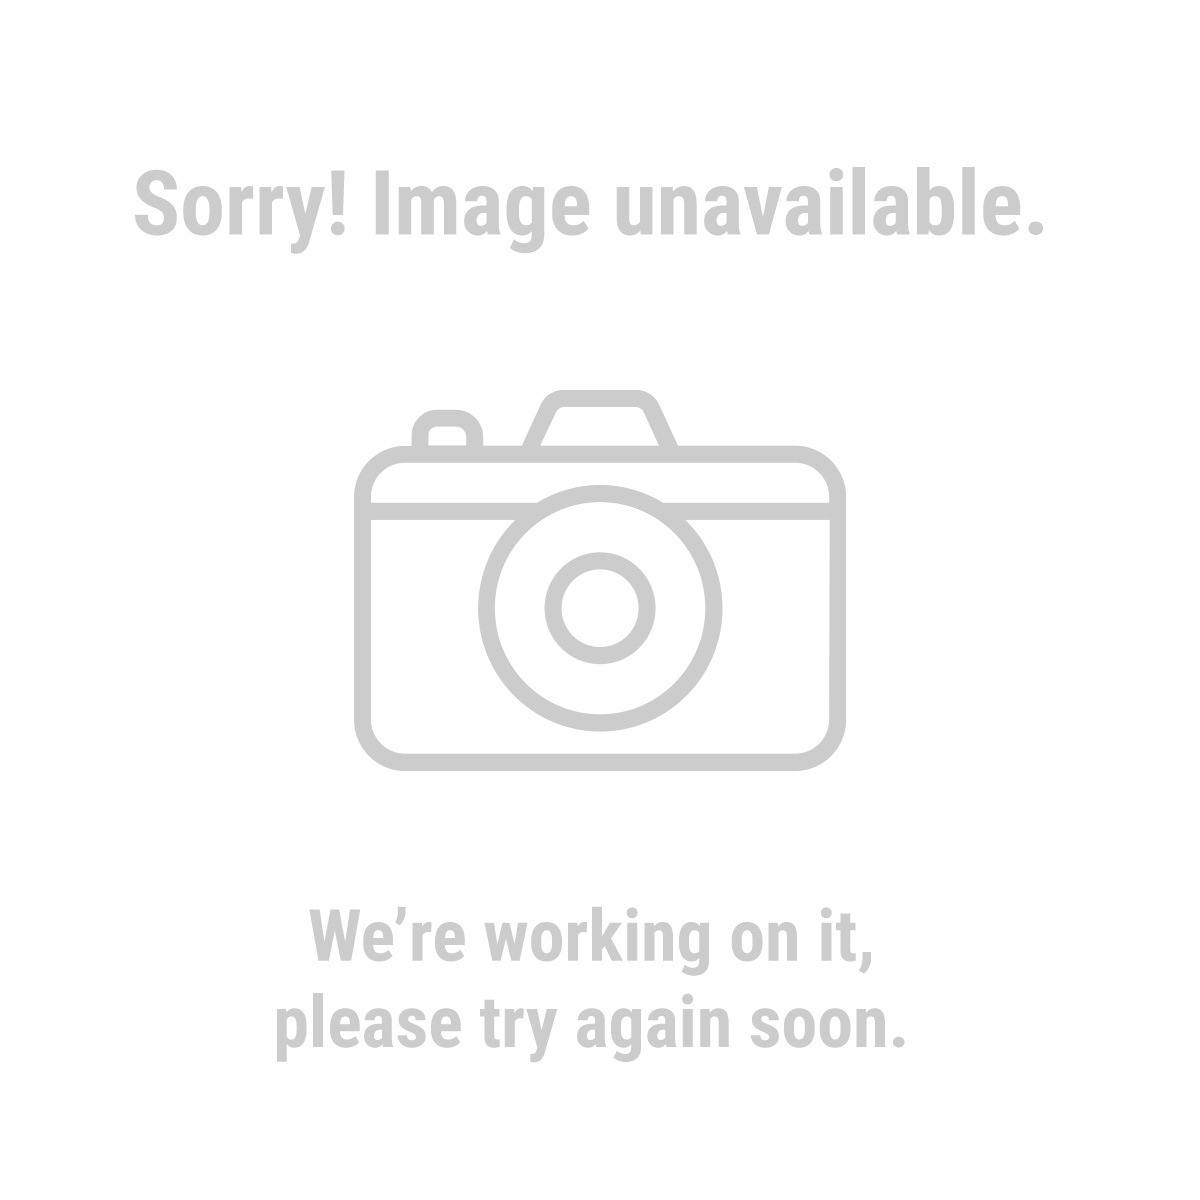 Ship to Shore 60624 4 Piece Stainless Steel Stock Pot Set